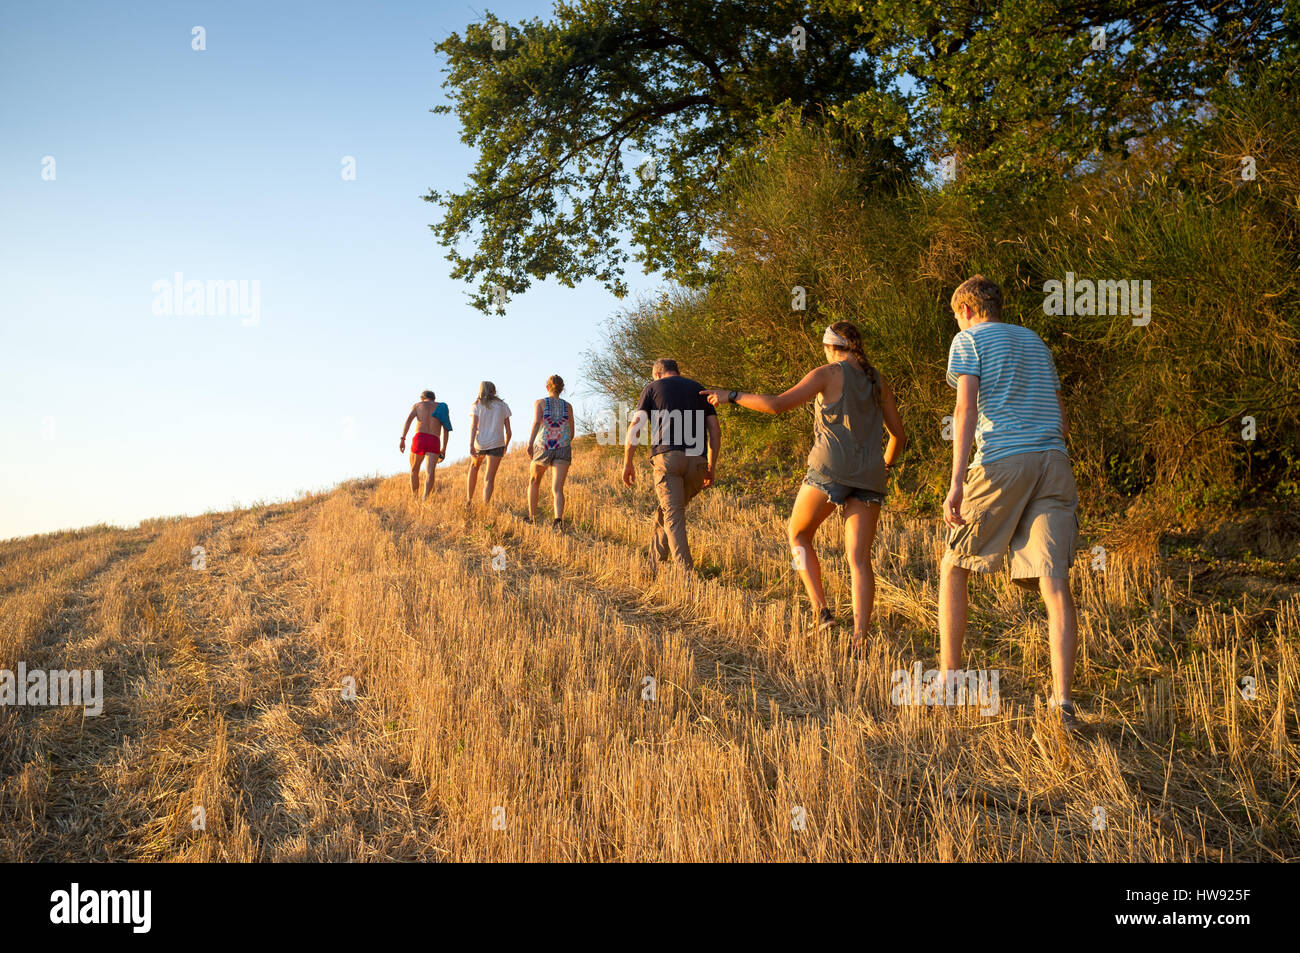 Family on a hike in Italy - Stock Image